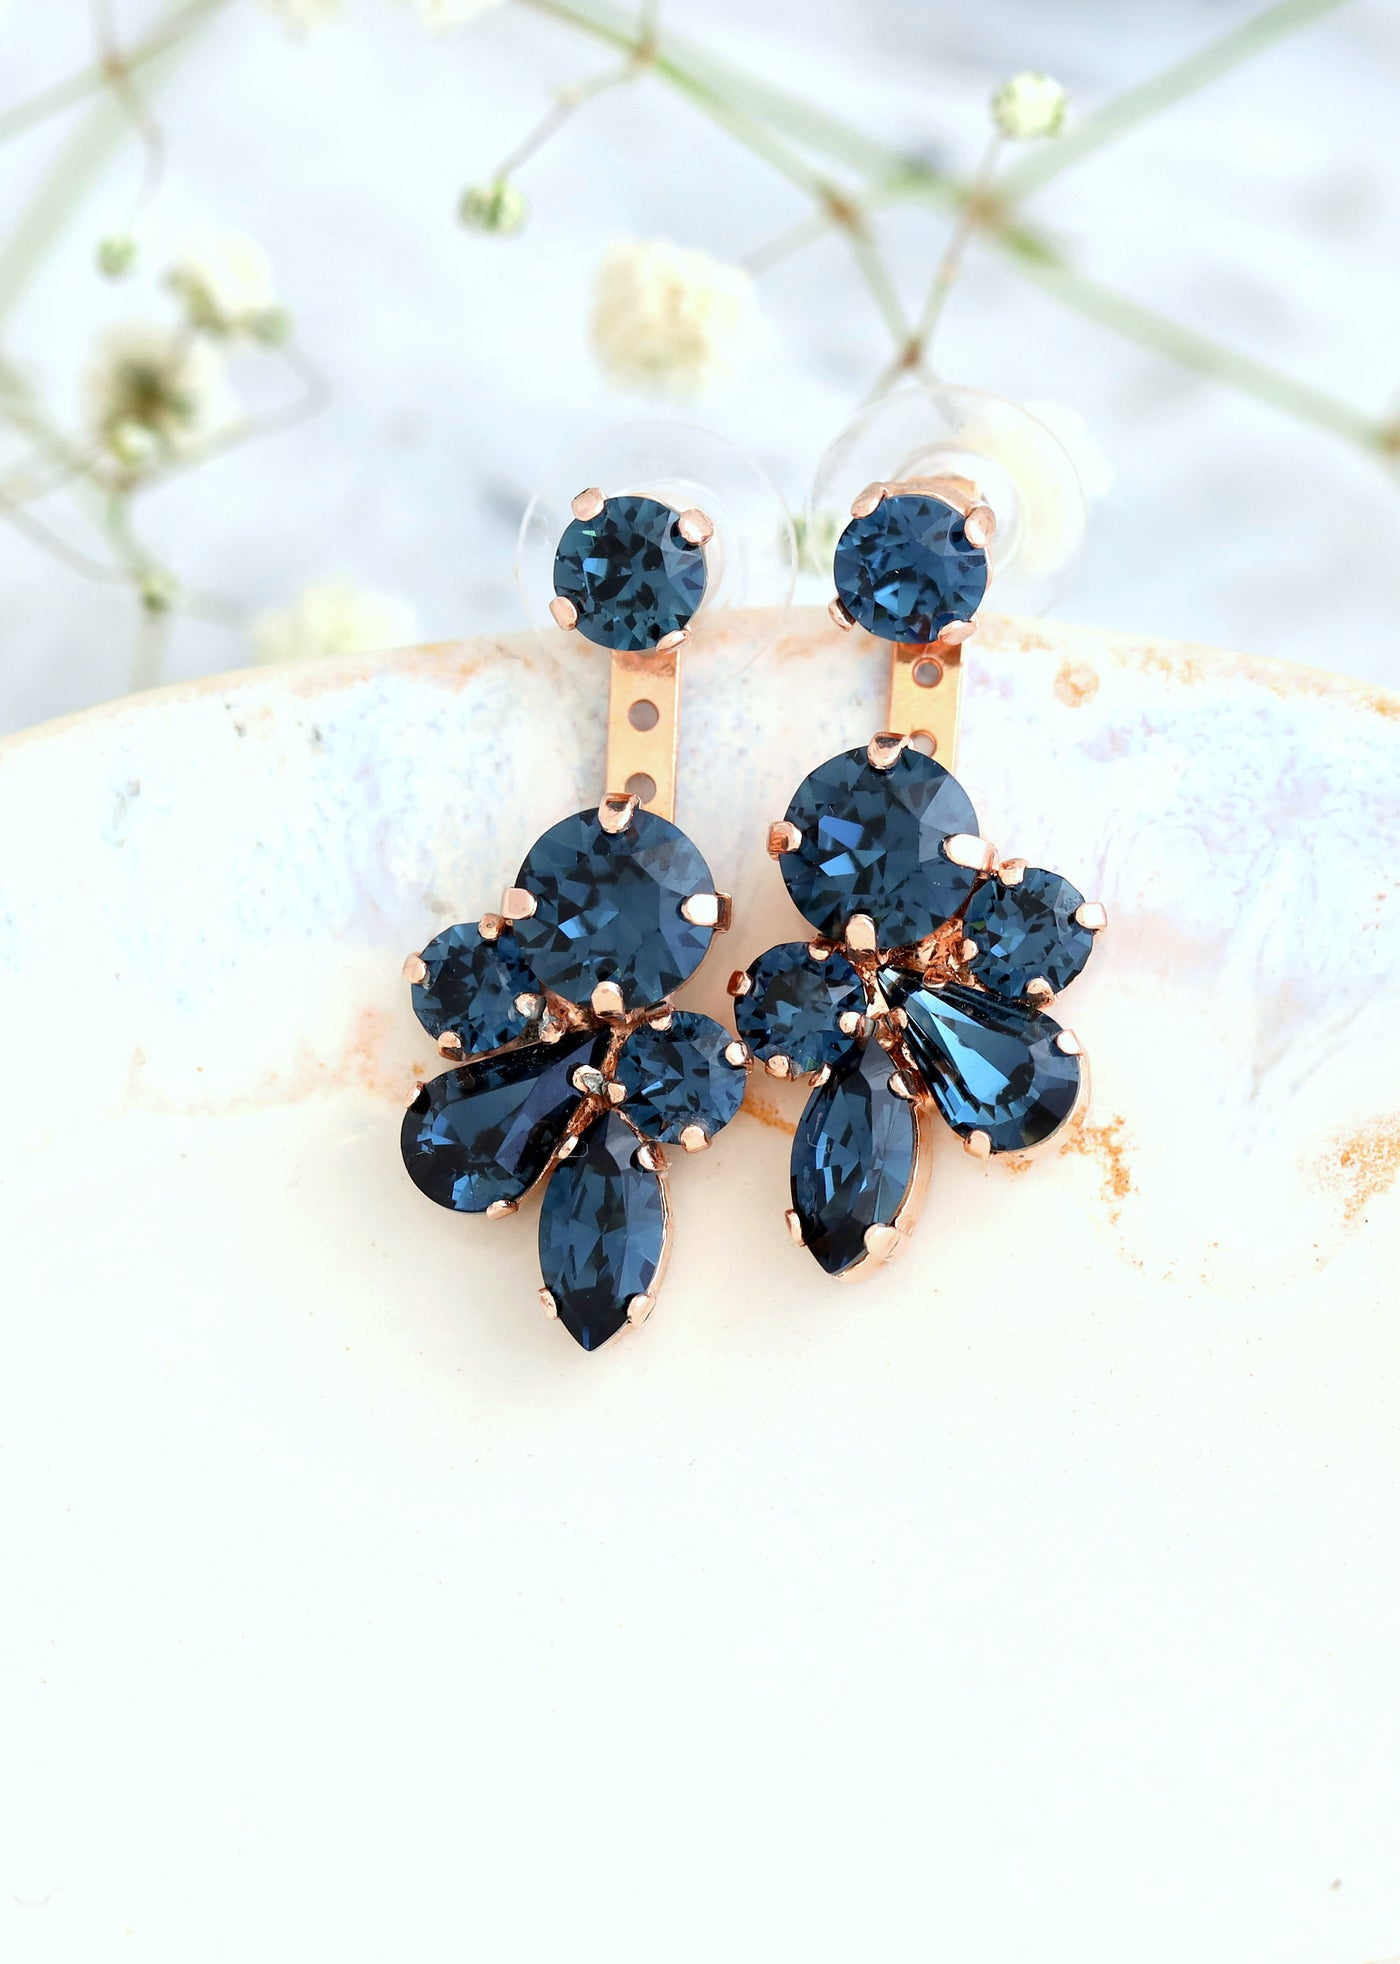 Blue Navy Earrings, Ear Jacket Earrings, Bridal Ear Jacket Earrings, Navy Blue Crystal Swarovski Earrings, Bridal Blue  Navy Stud Earrings